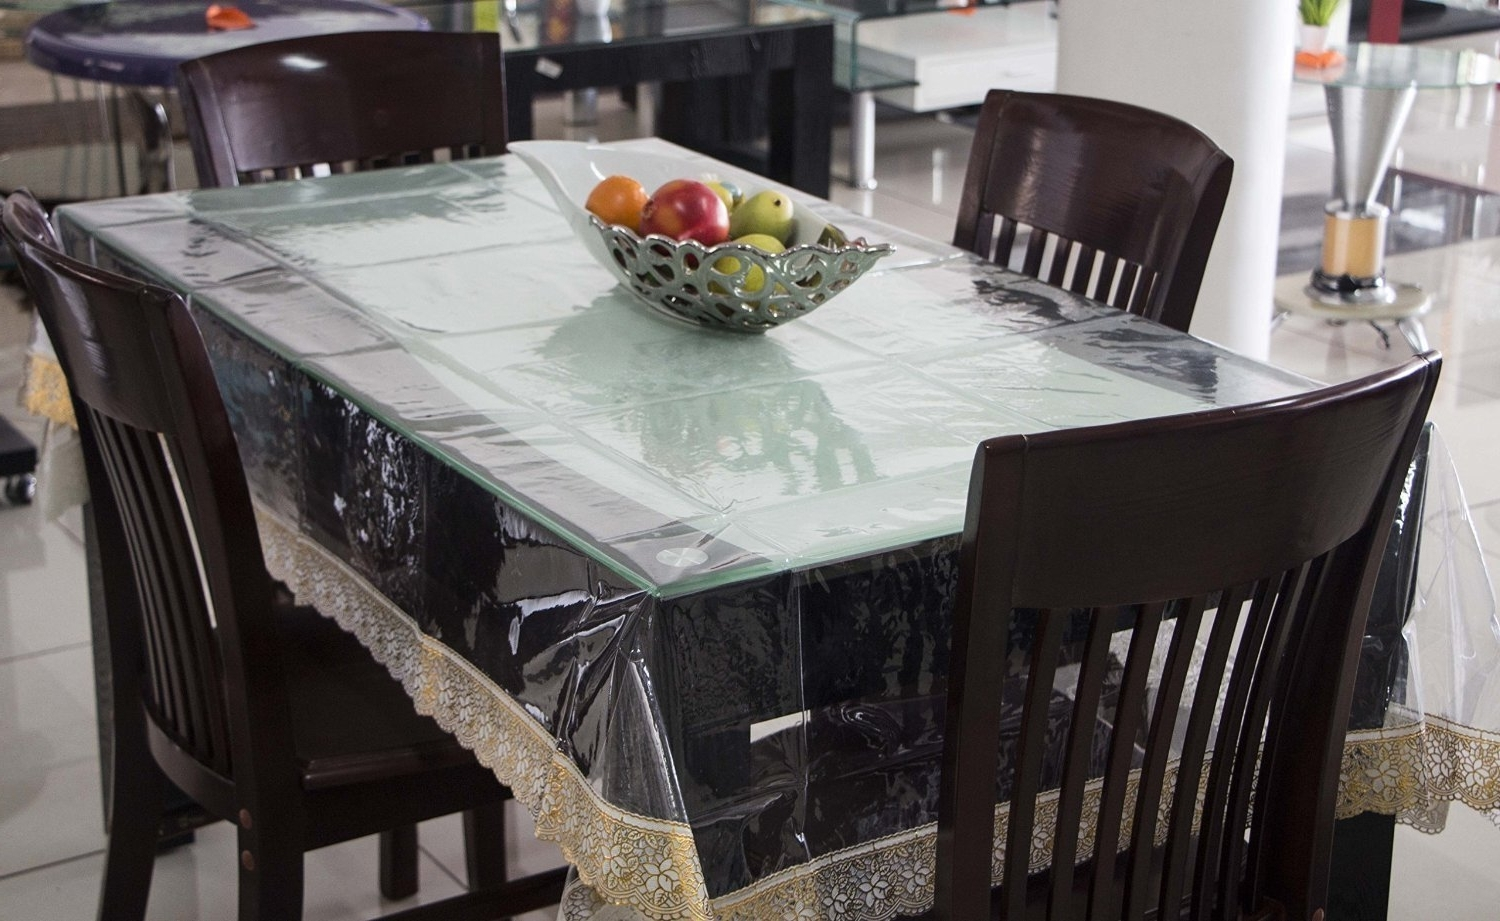 Recent Clear Plastic Dining Room Table Covers – Dining Tables Ideas Throughout Clear Plastic Dining Tables (View 6 of 25)